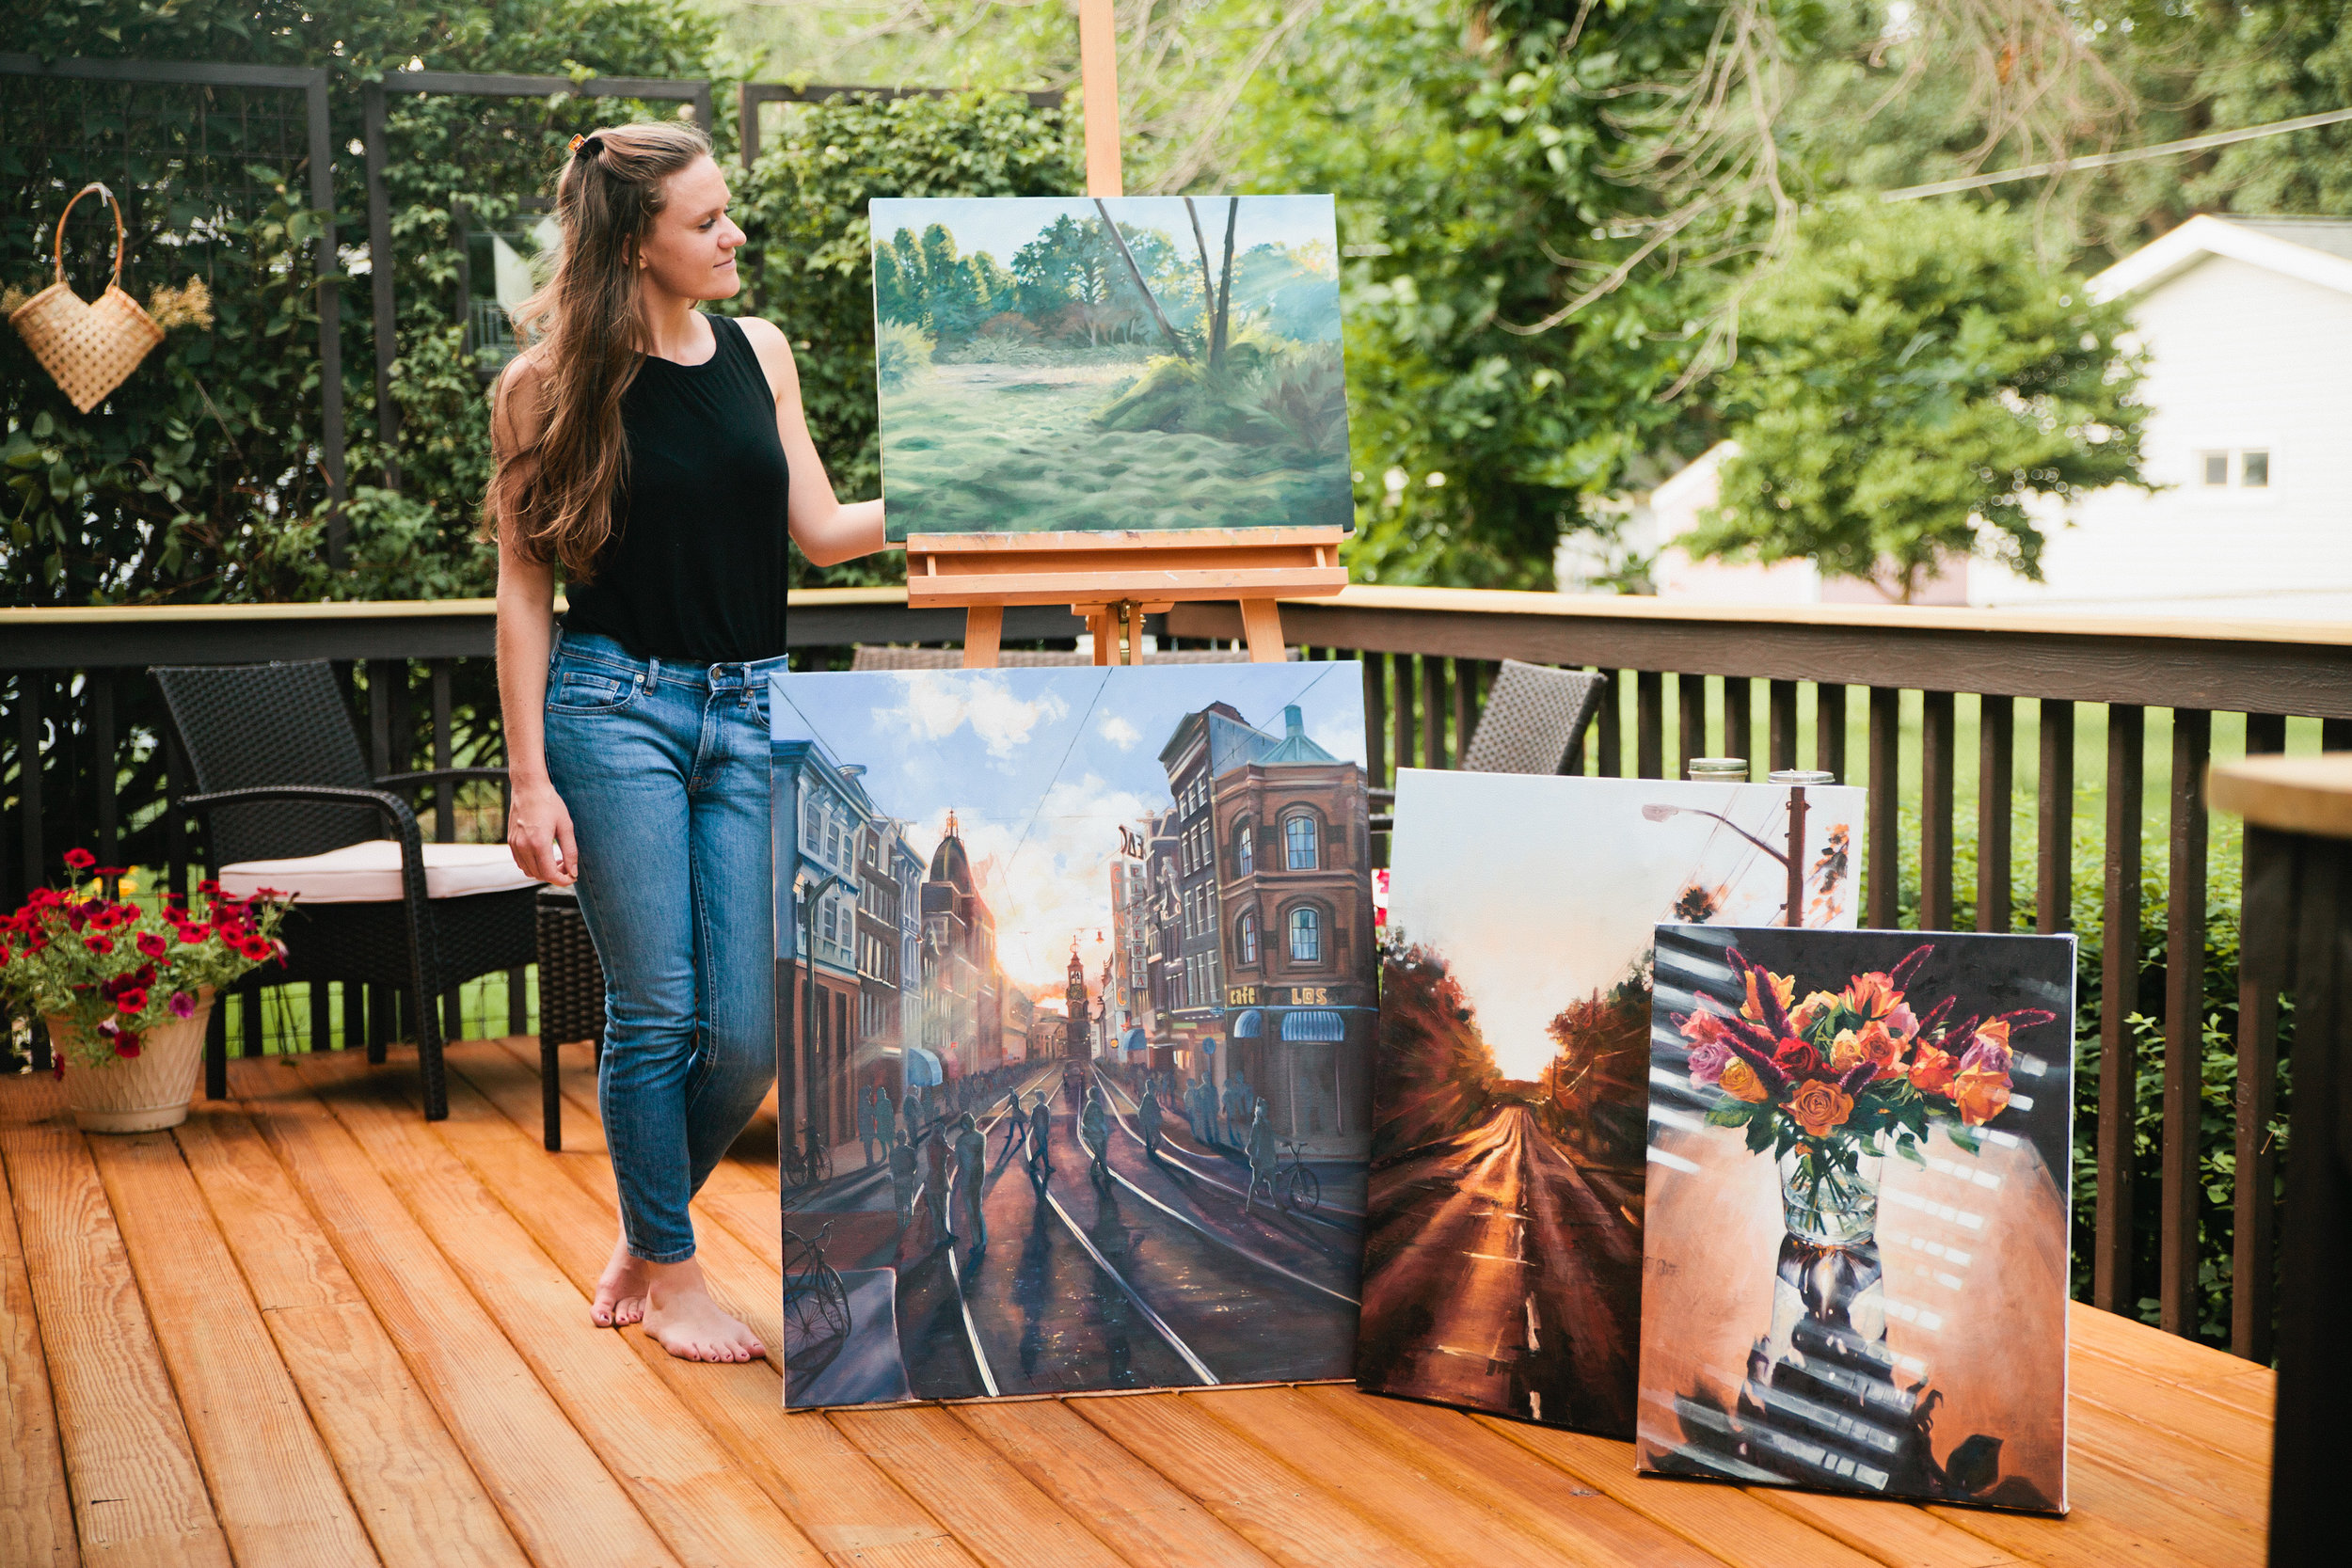 Amelia Ann painter and artist displaying her paintings